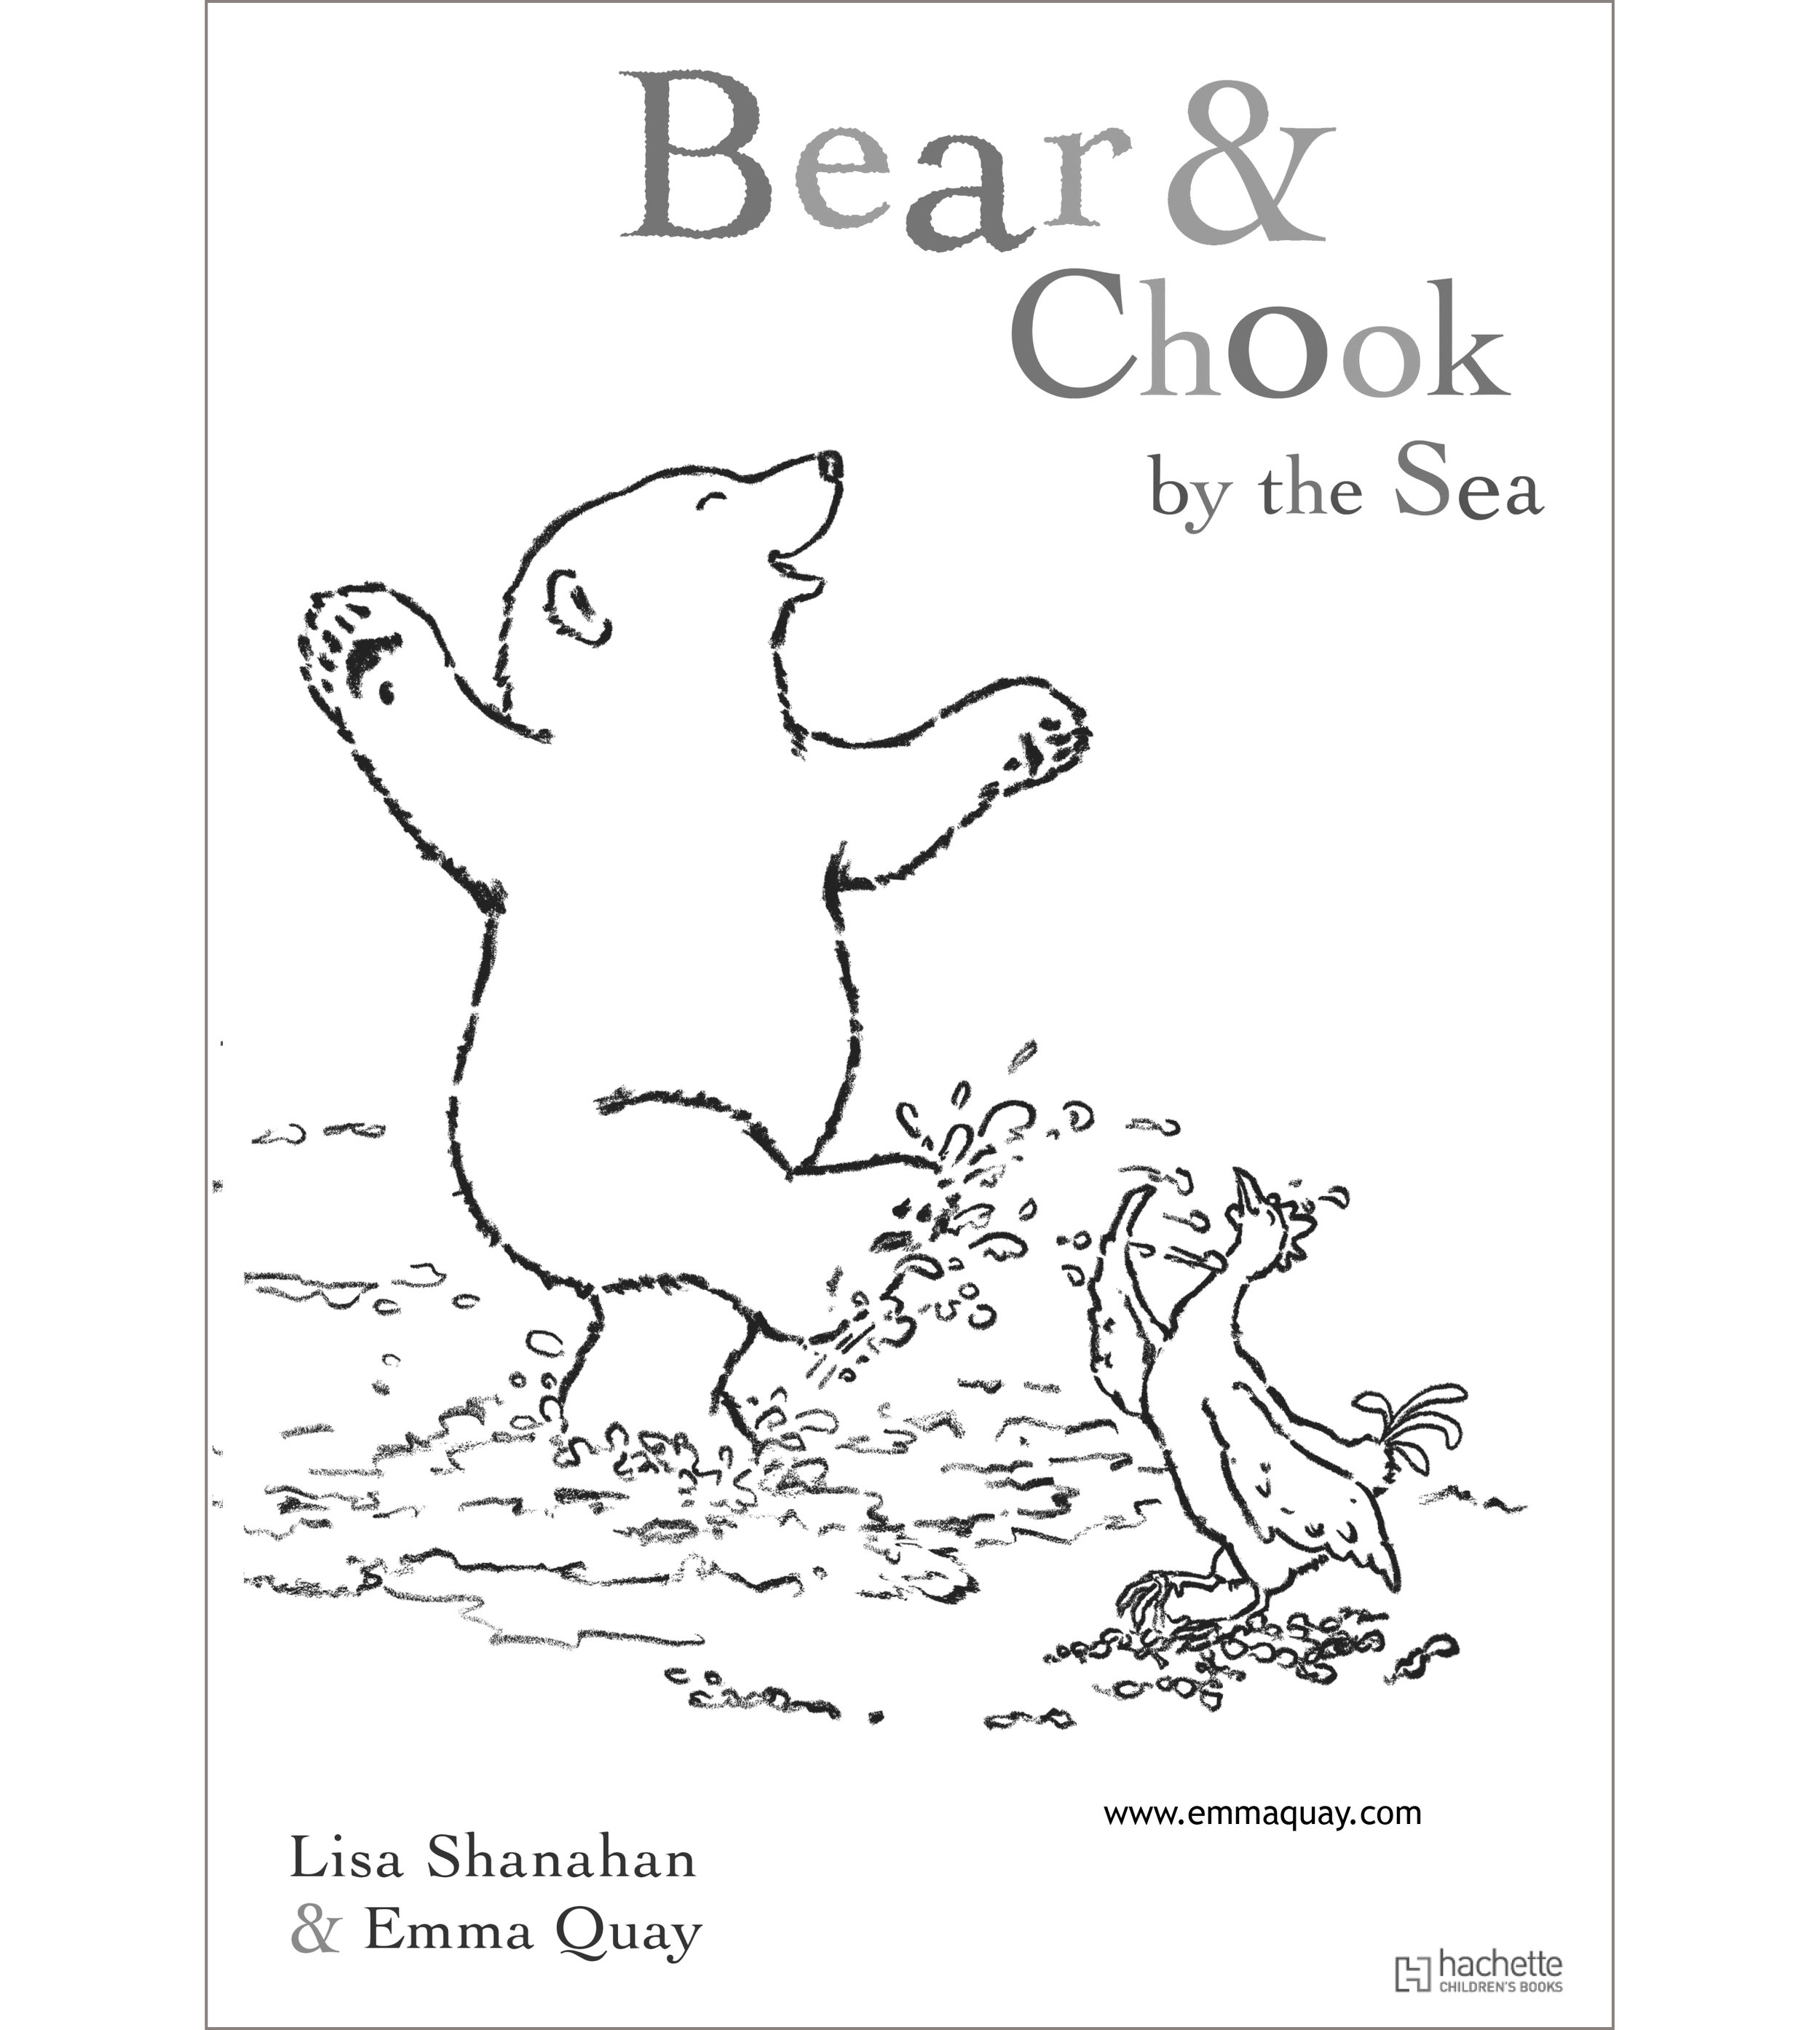 BEAR AND CHOOK BY THE SEA colouring activity • http://www.emmaquay.com